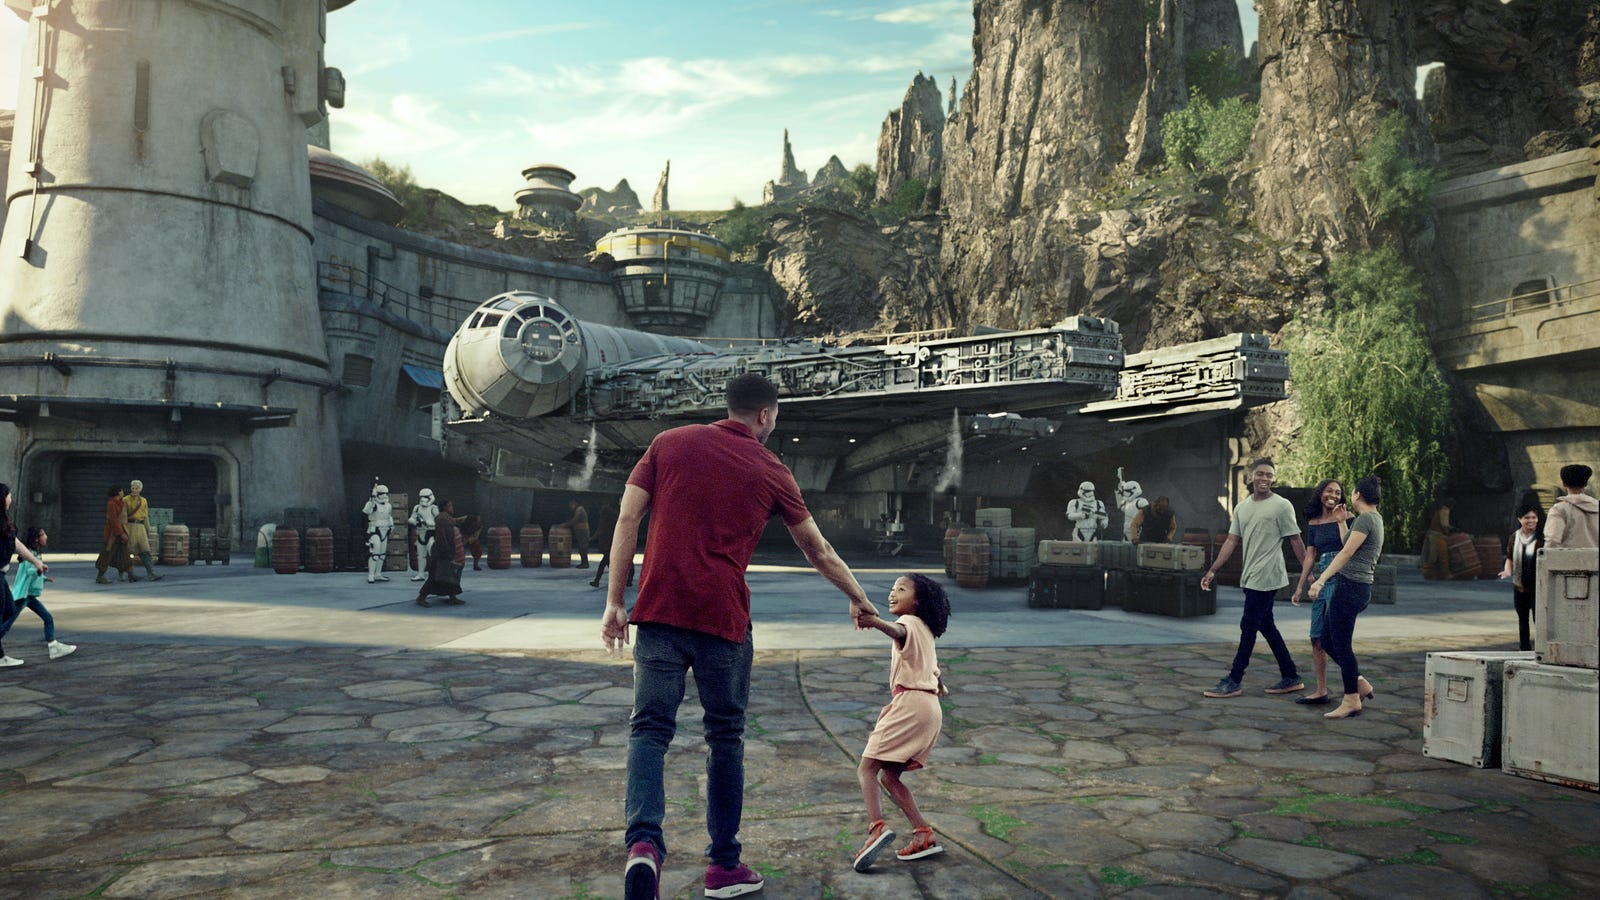 Star Wars Land Opens Up the Possibility to Live Your Dream